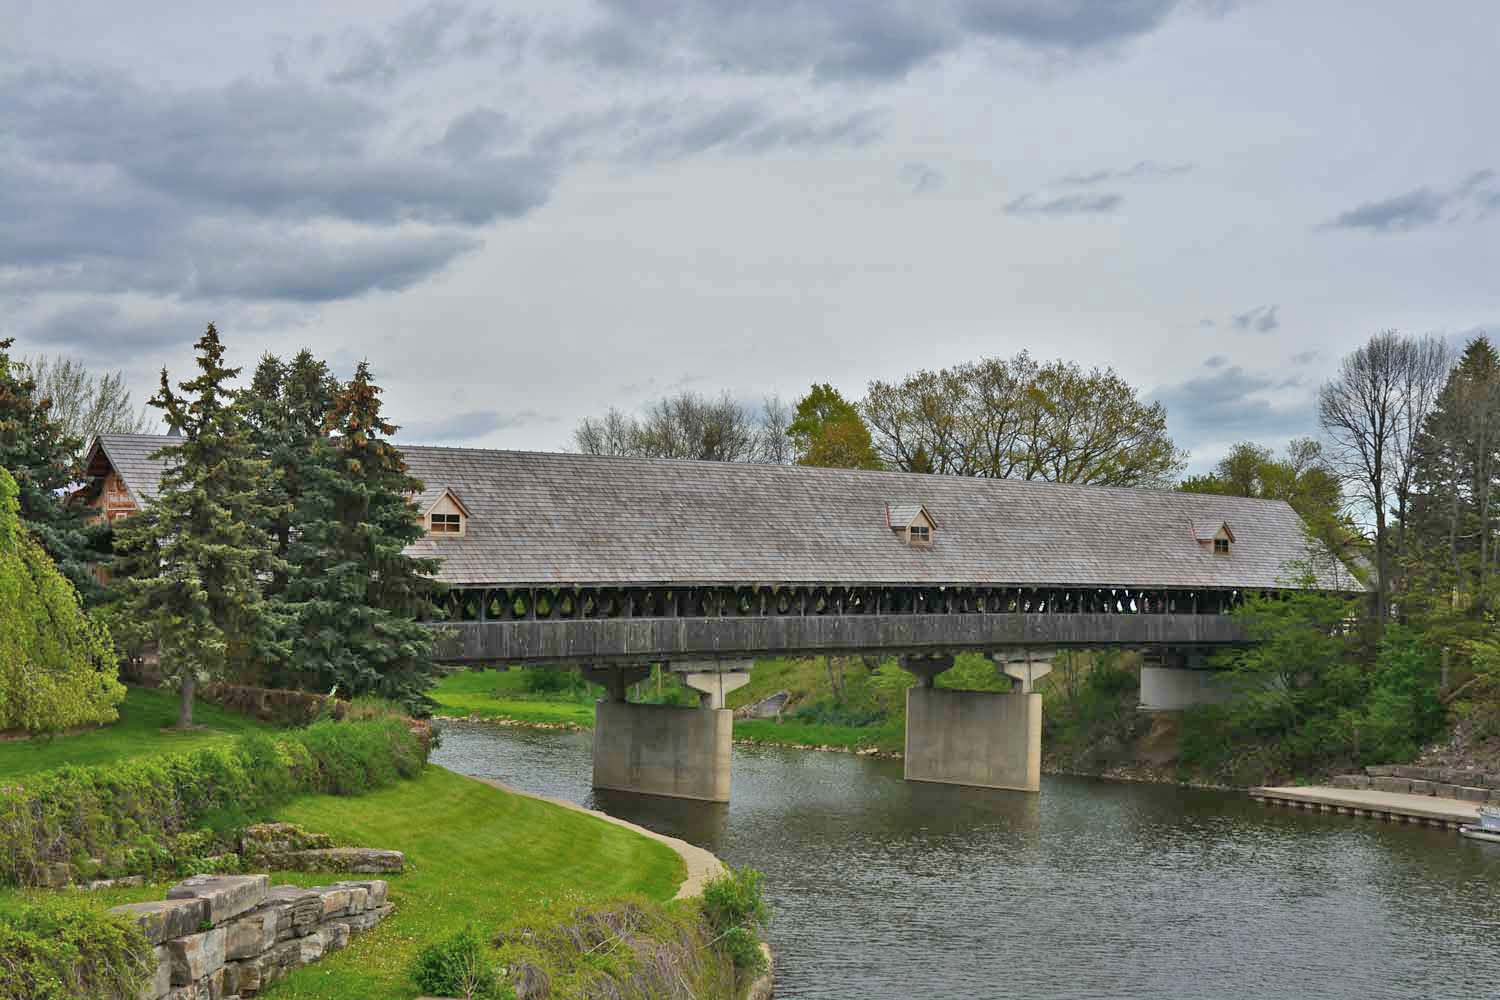 Frankenmuth covered wooden bridge over the Cass River